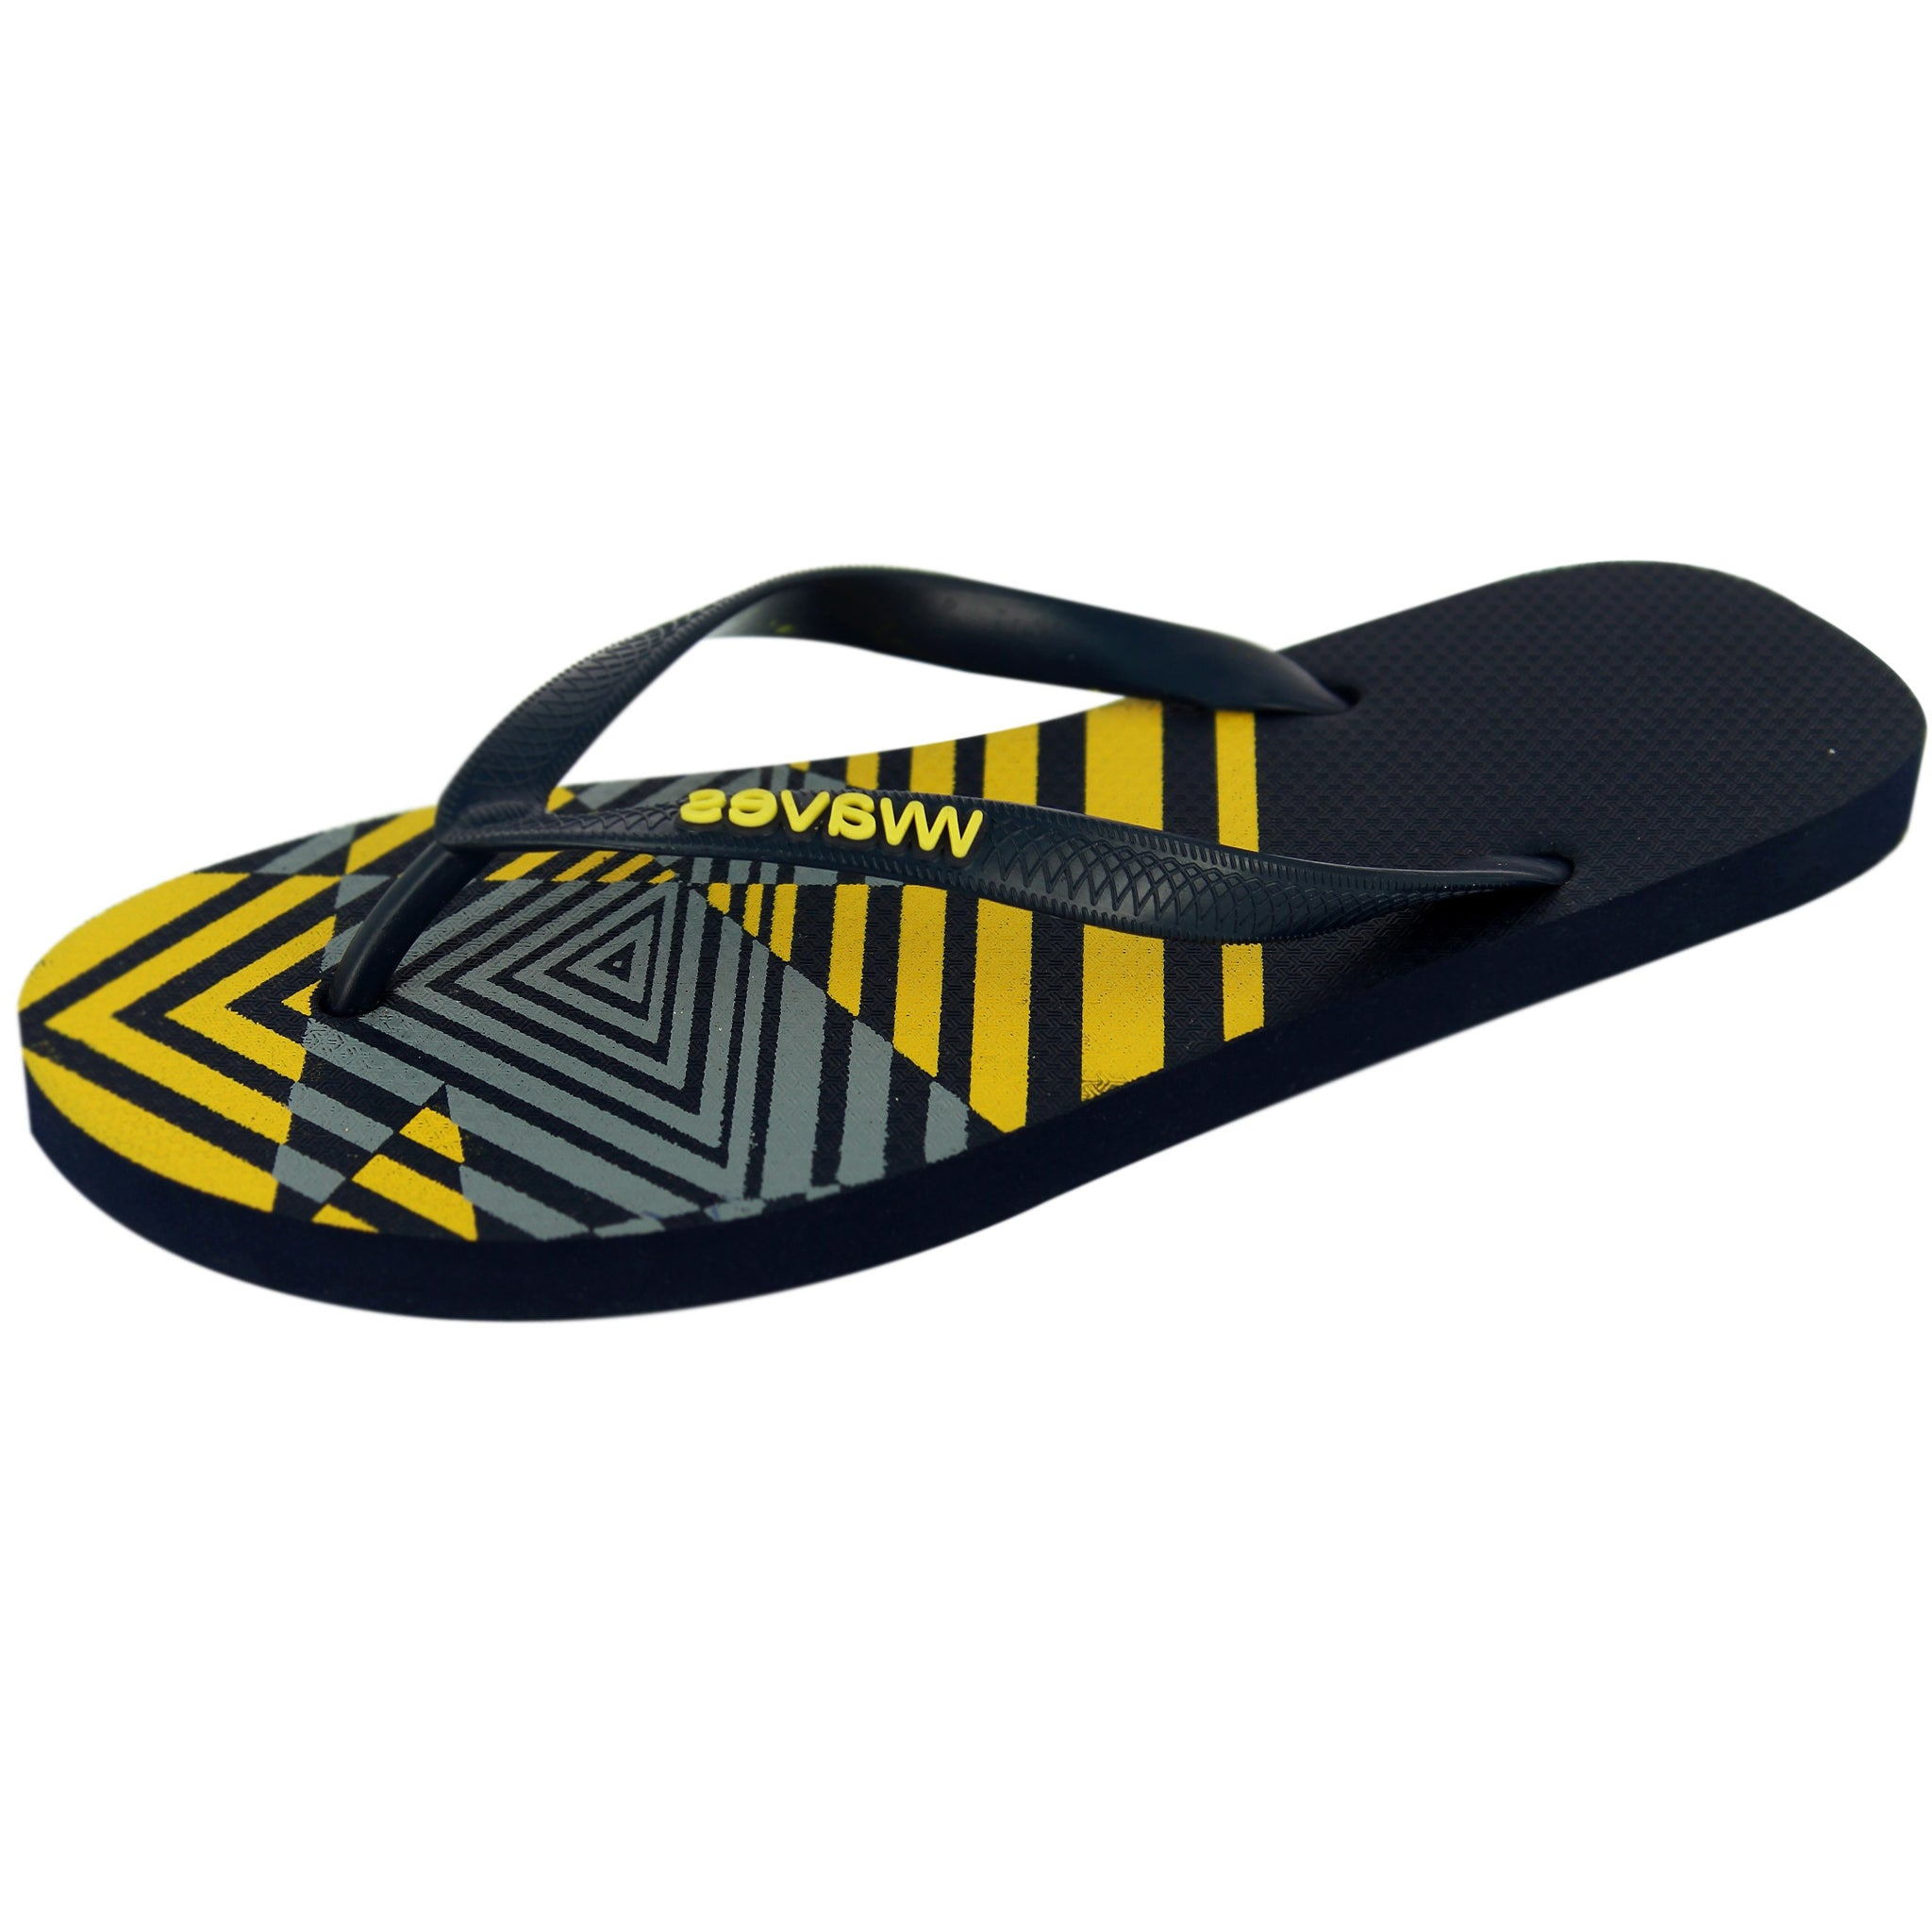 Navy Blue and Yellow Star Print Flip Flops, Men's